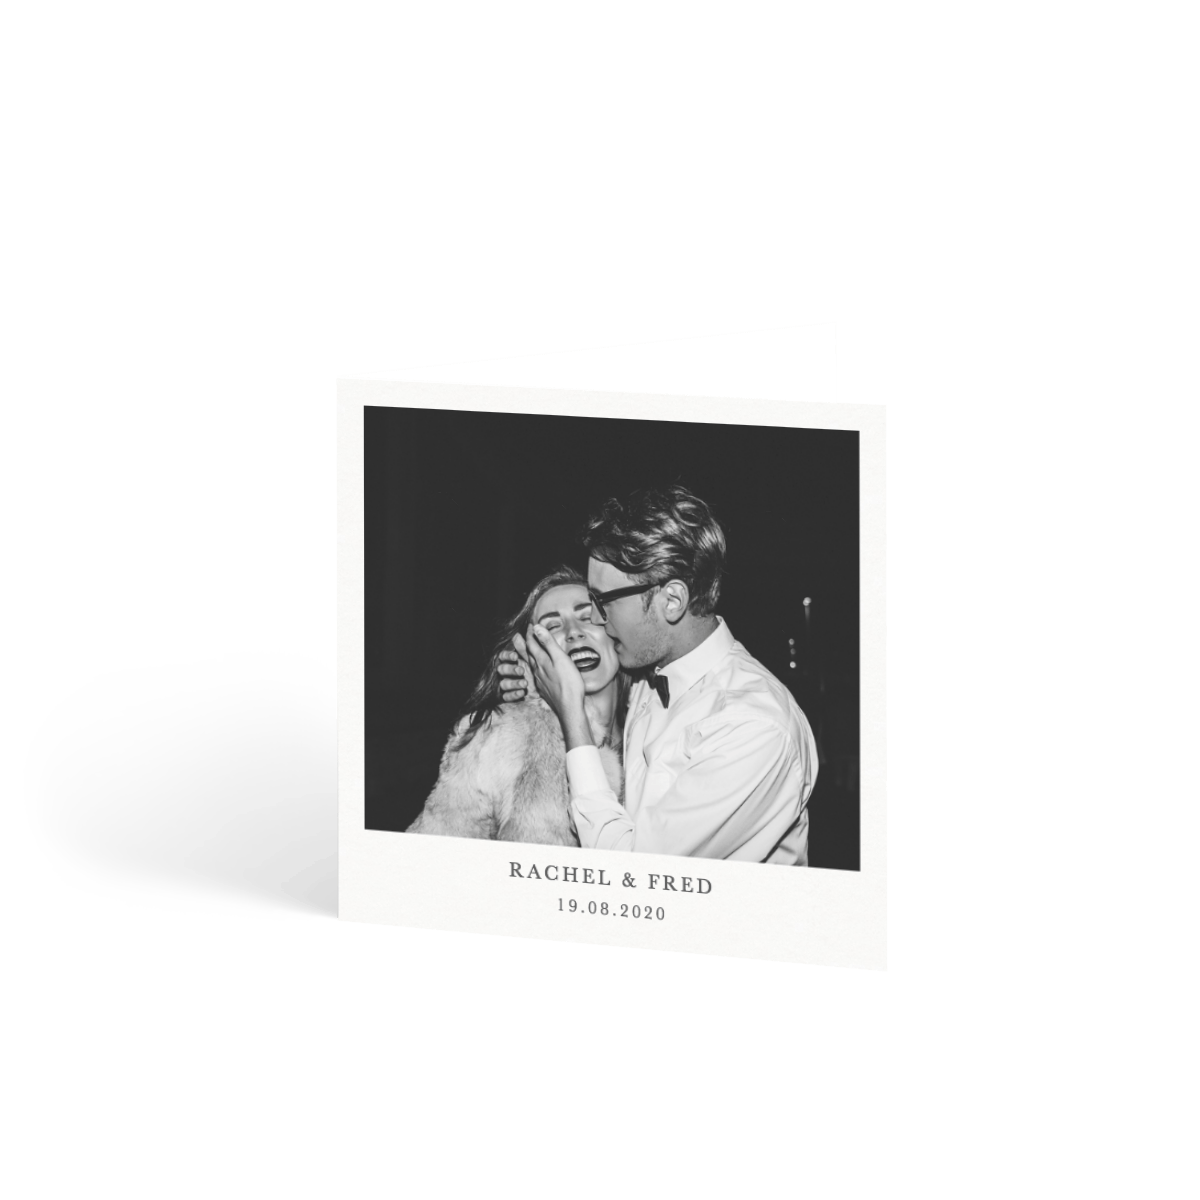 Https%3a%2f%2fwww.papier.com%2fproduct image%2f43964%2f16%2fwedding photo frame 633 vorderseite 1534765628.png?ixlib=rb 1.1